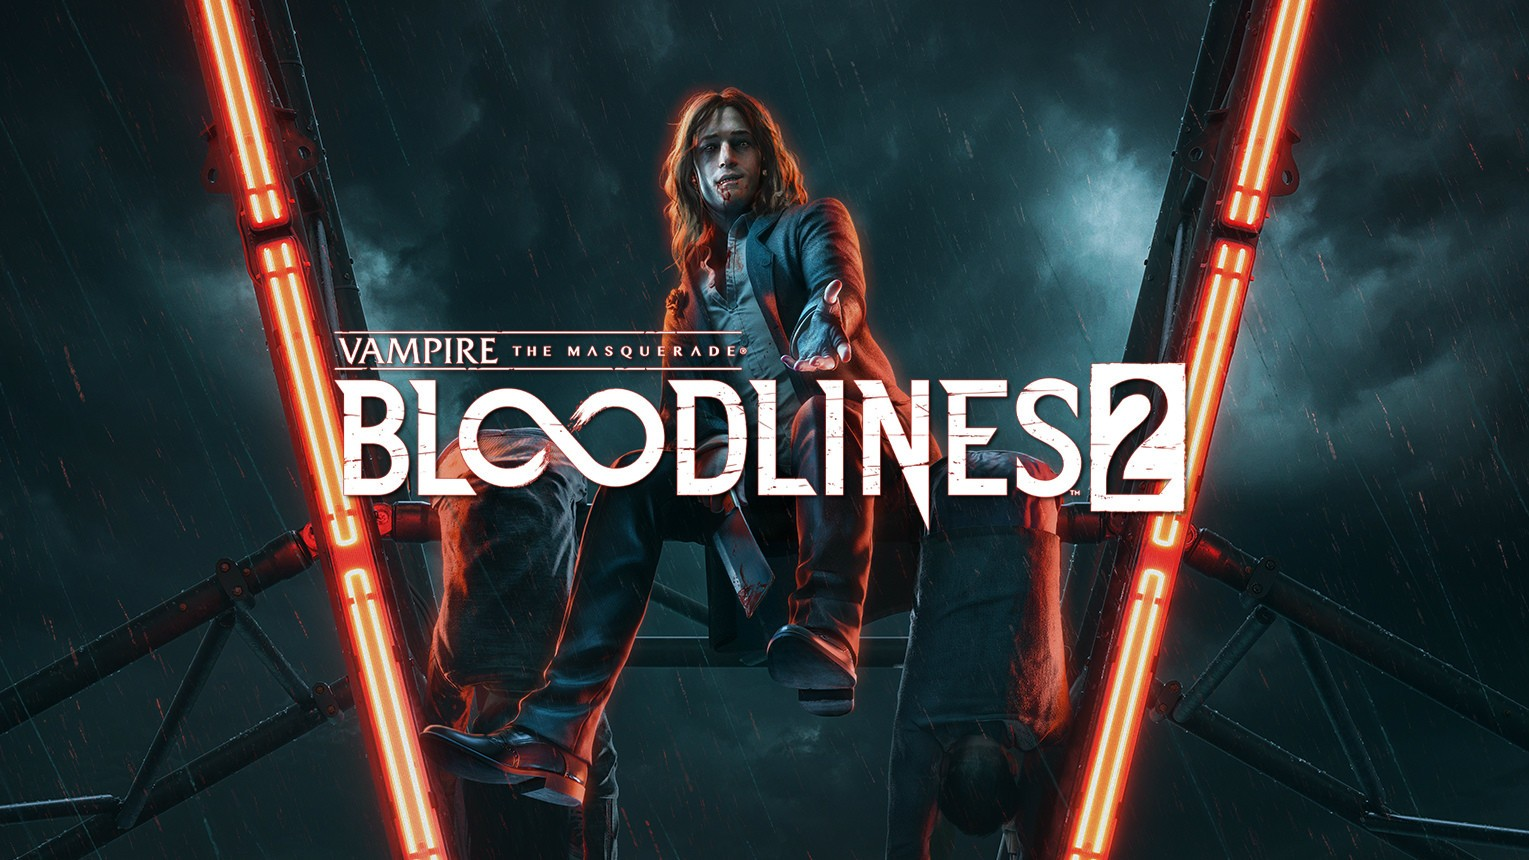 Vampire: The Masquerade - Bloodlines 2 Announced With Mod Support news - Mod DB